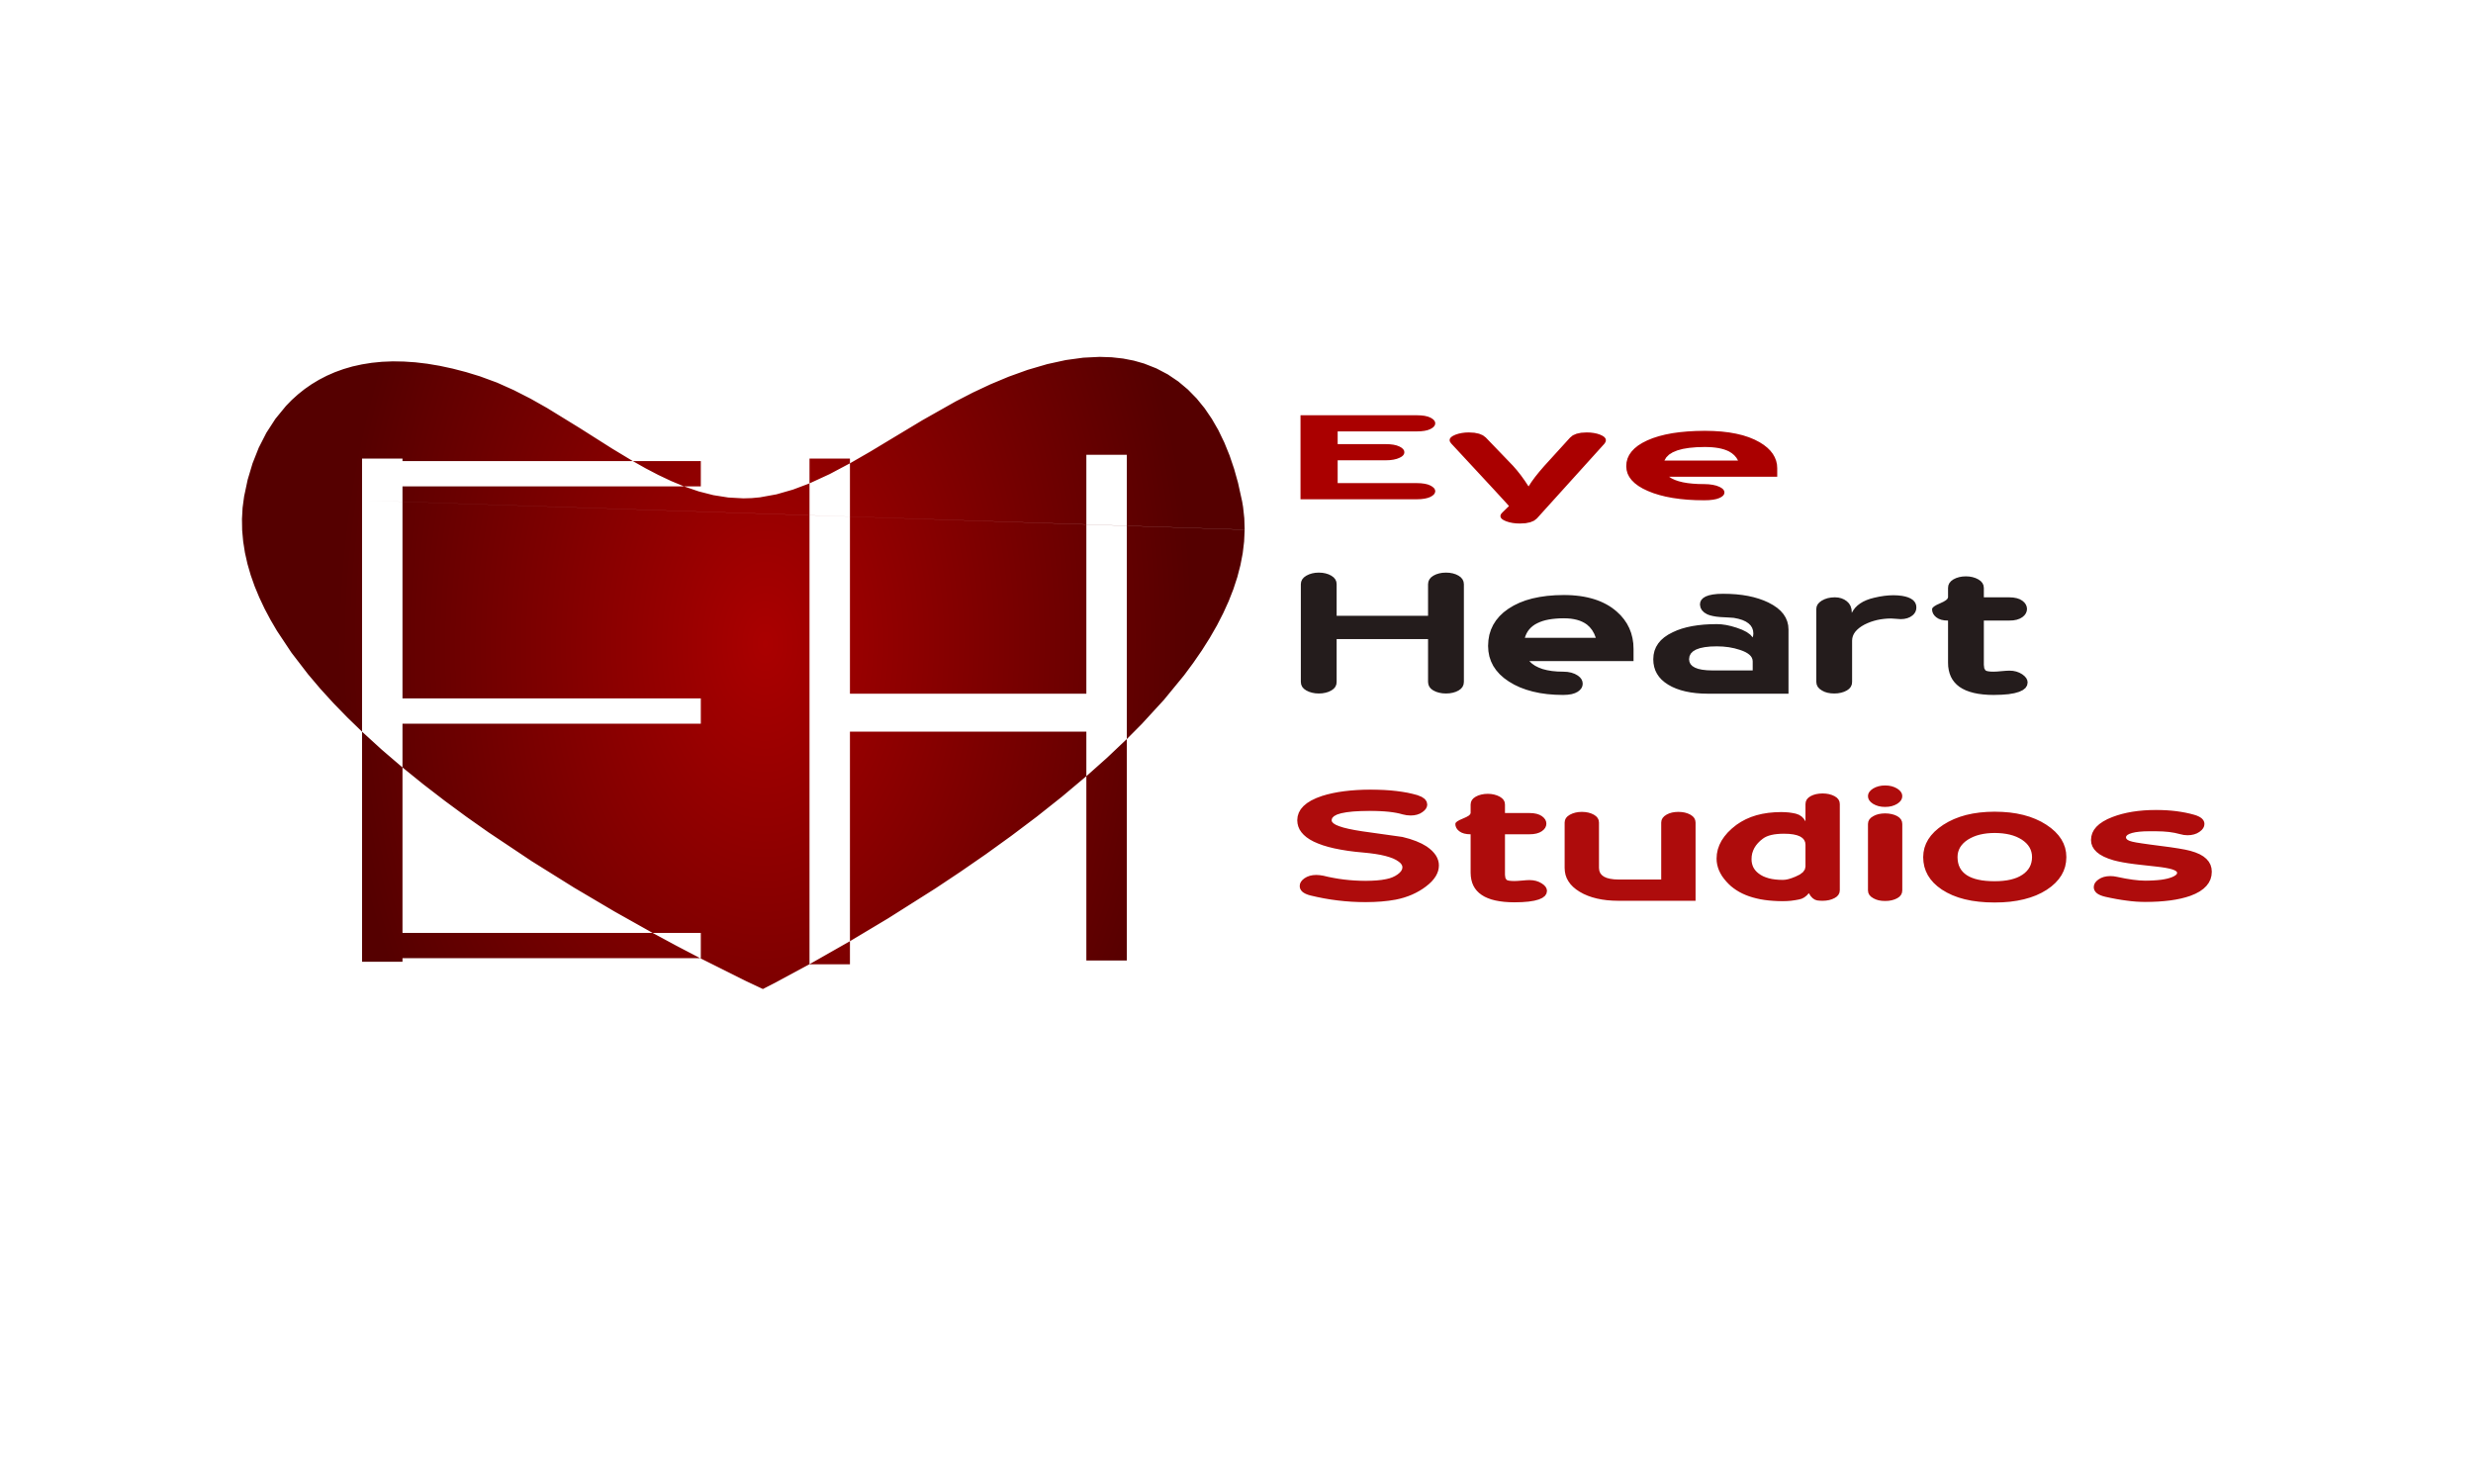 Logo Design by Arindam Khanda - Entry No. 146 in the Logo Design Contest Unique Logo Design Wanted for Eye Heart Studios.